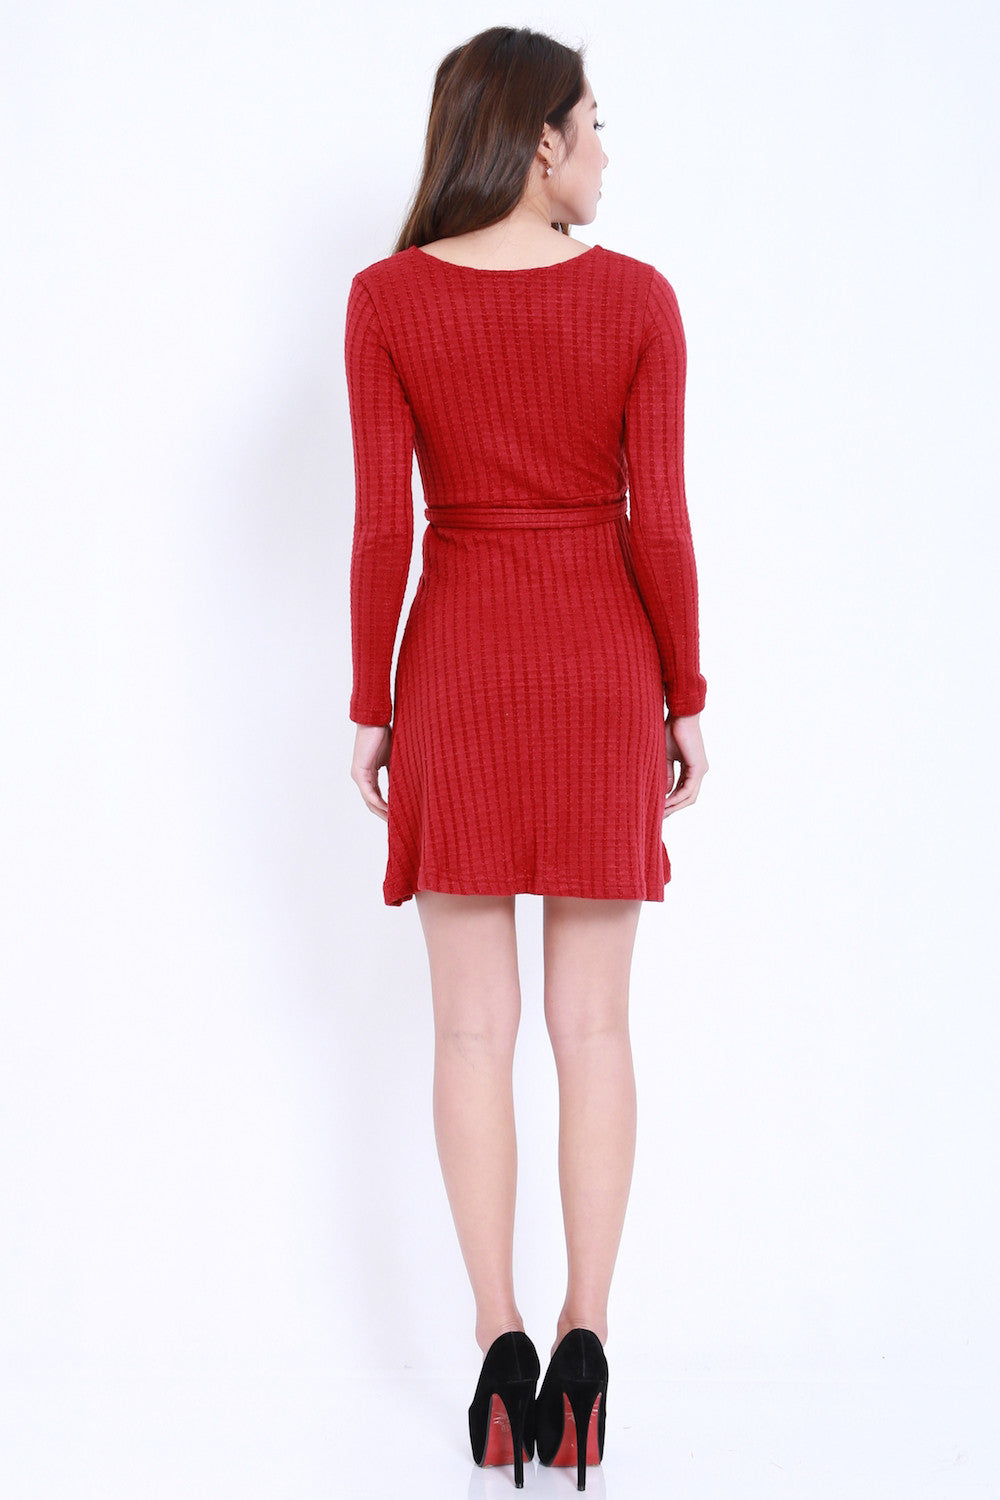 Overlap Knit Dress (Maroon) -  - 5